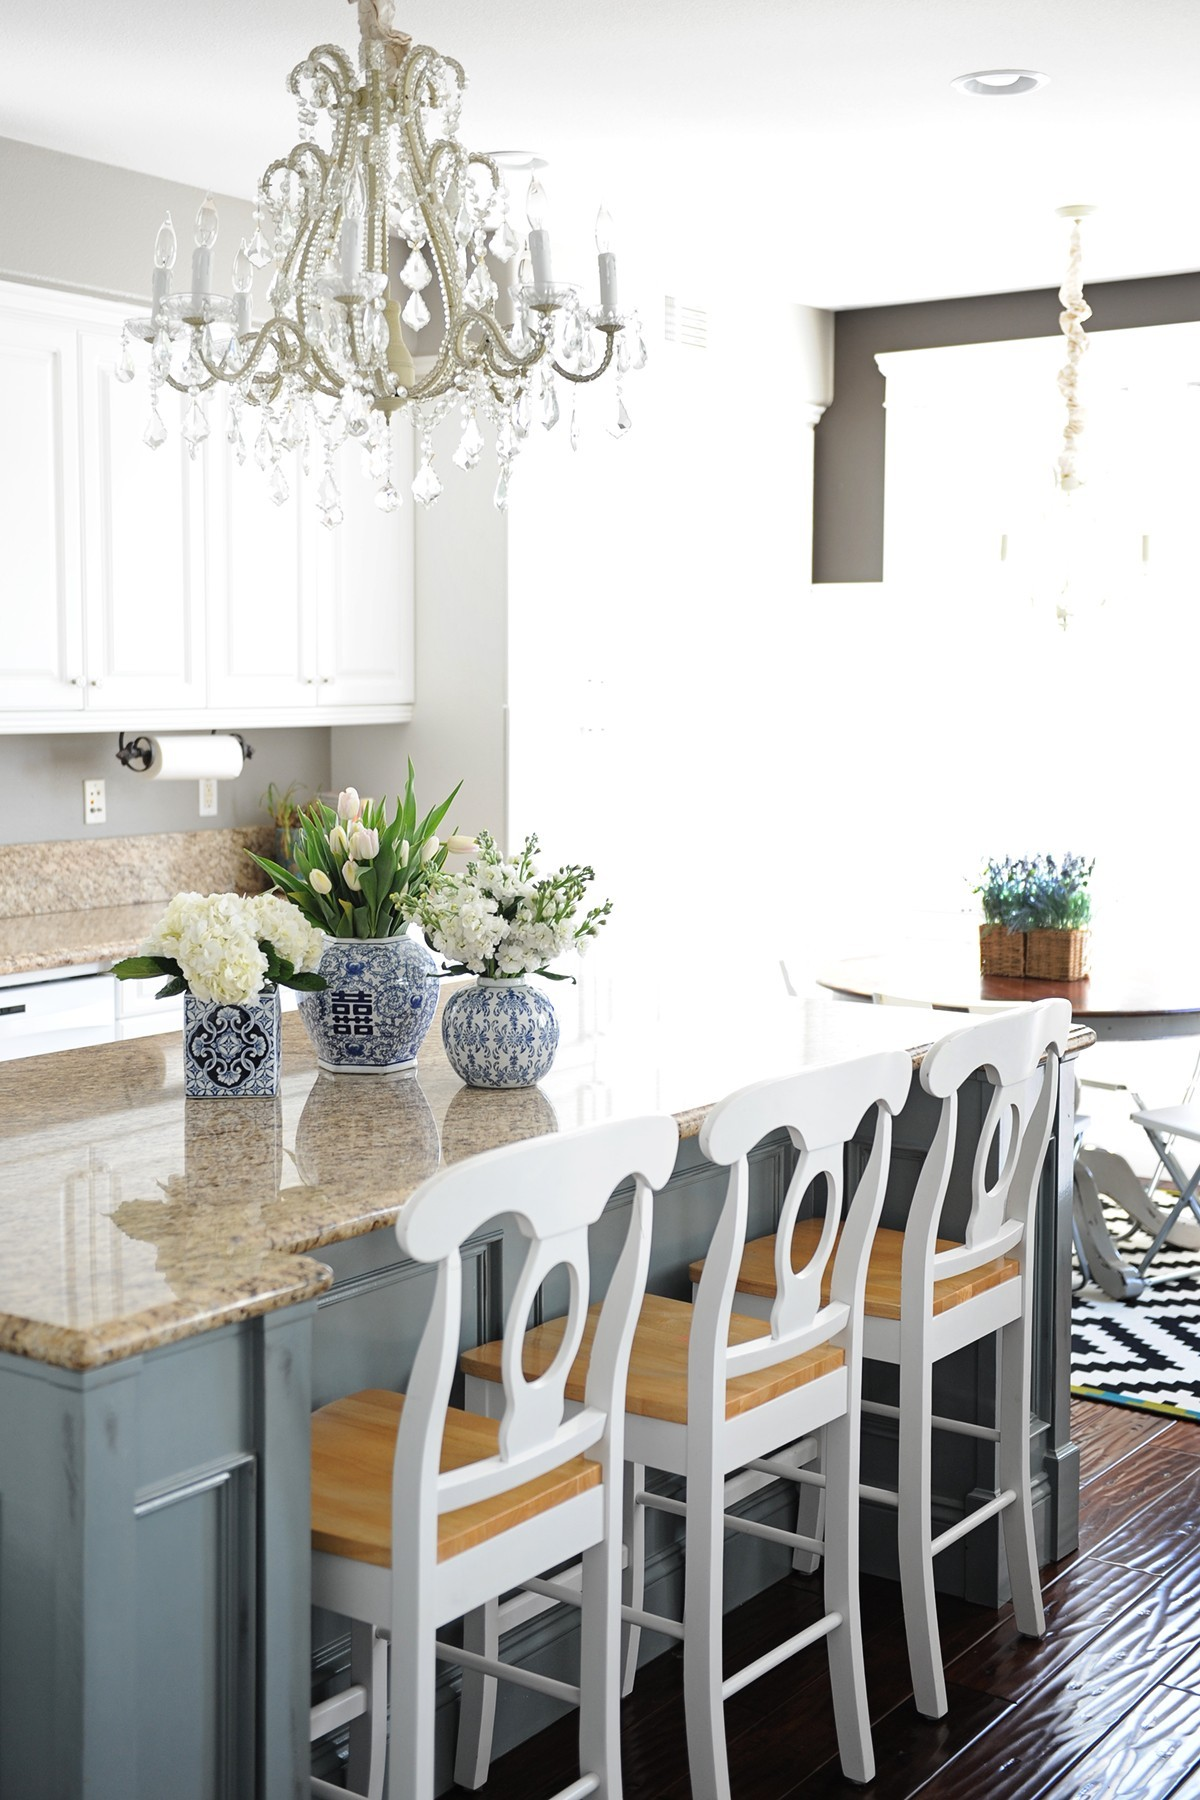 The White Kitchen : My Thoughts on the All White Interior Design ...